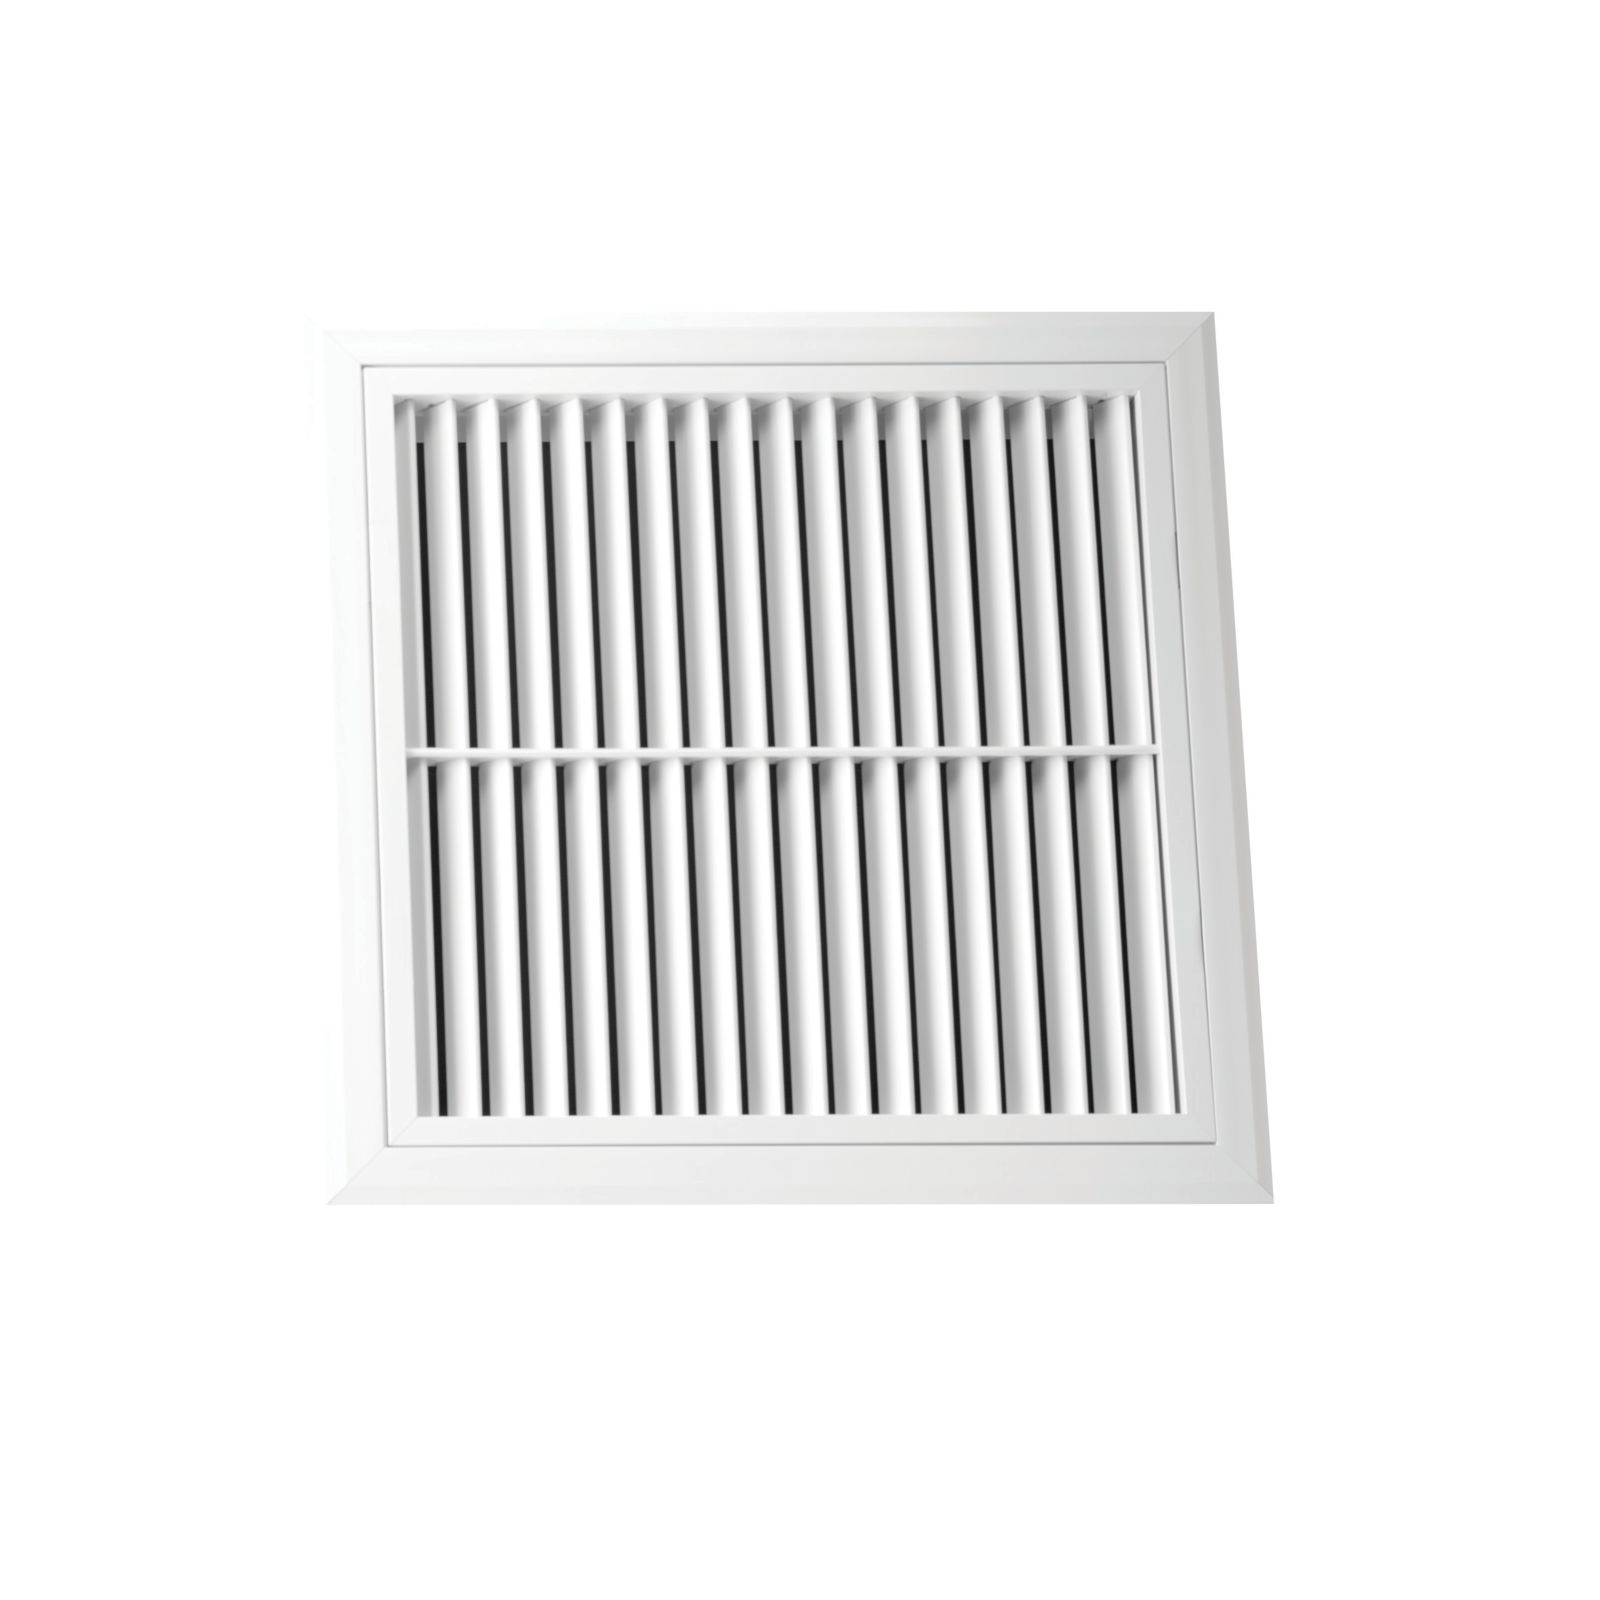 "Hart & Cooley 067110 - Aluminum Return Air Filter Grille, 45-Degree Fixed Blade, White Finish, 30"" X 24"""